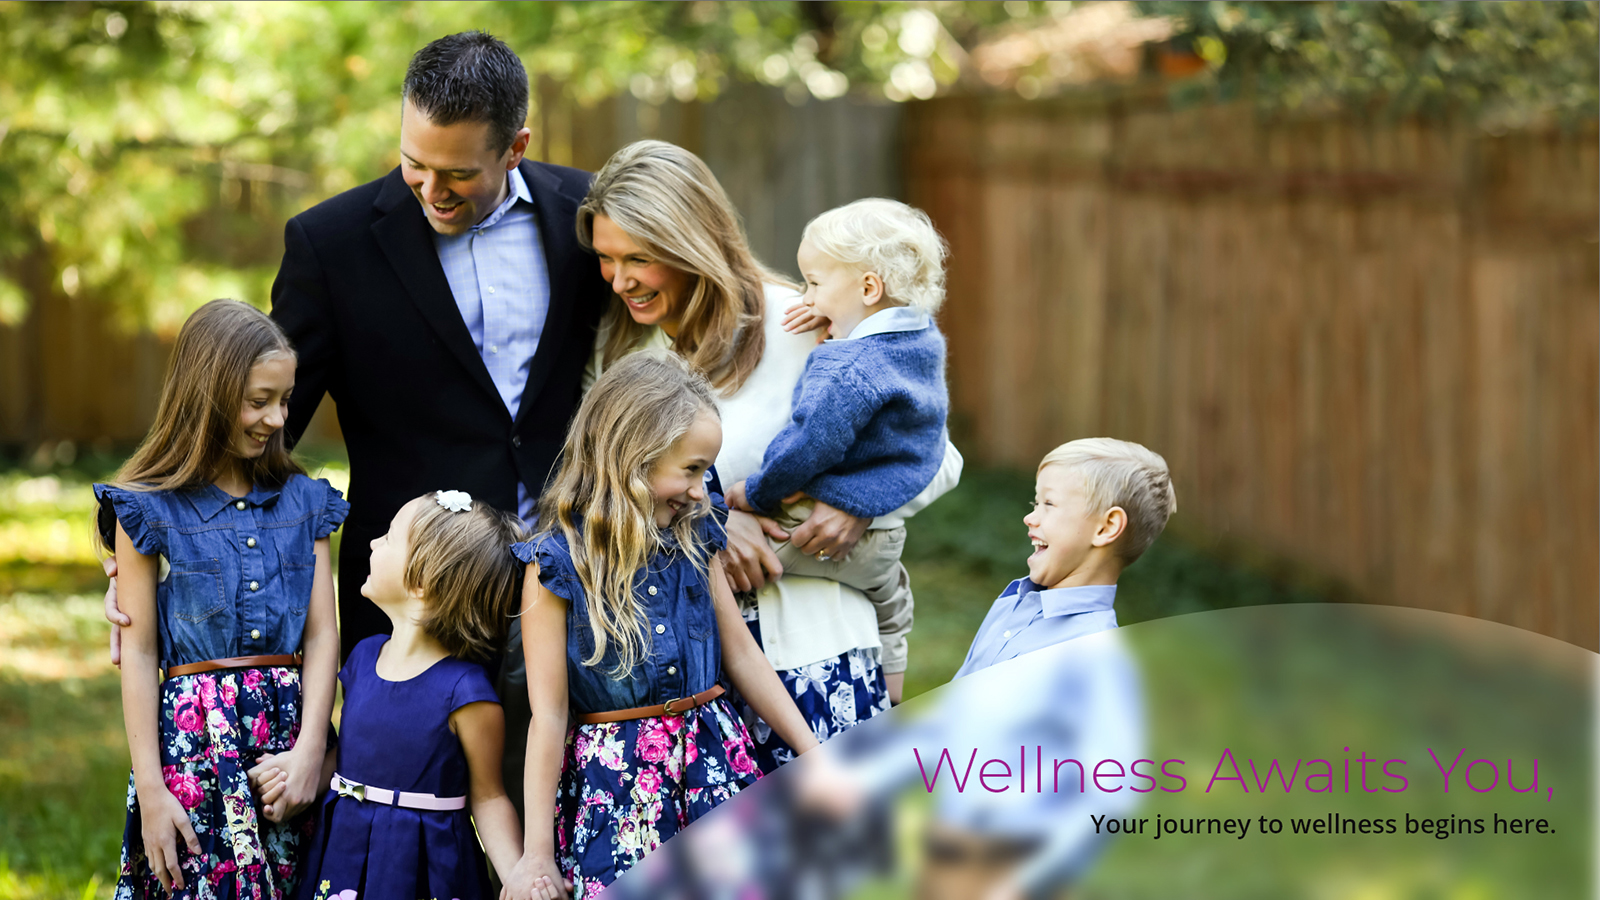 Banner for Newhouse Health Solutions featuring Dr. Patrick Newhouse, B.S, D.C. with his family in a spacious backyard area. The text on the bottom of the image reads 'Wellness Awaits You. Your journey to wellness begins here.'